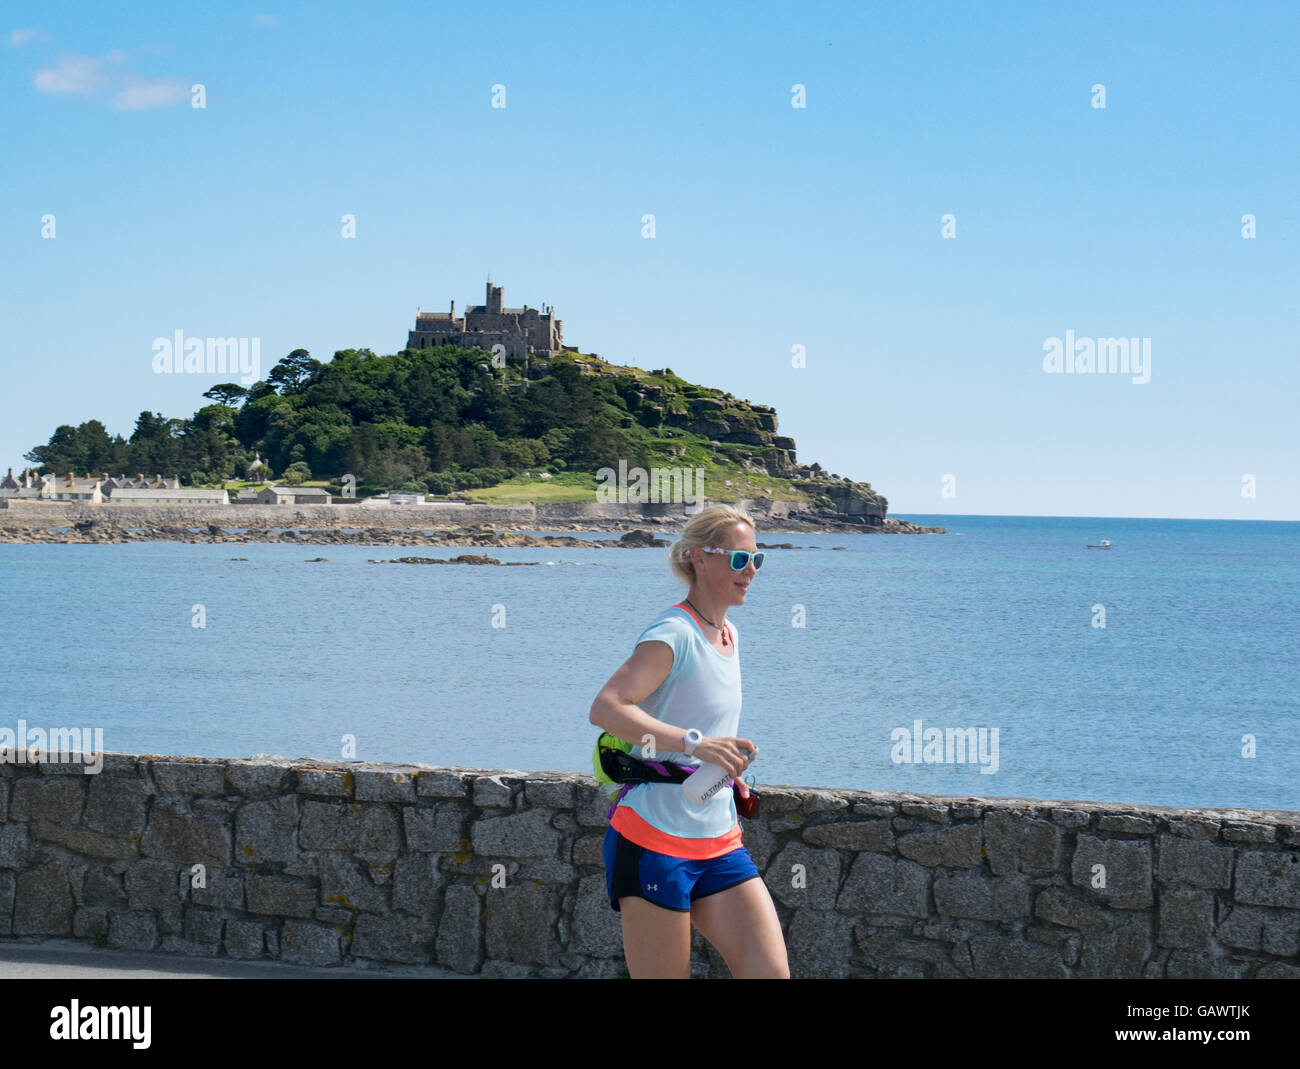 Marazion, Cornwall, UK. 5th July 2016. Former police firearms officer, Yvie Johnson, who suffers from bipolar disorder, - Stock Image